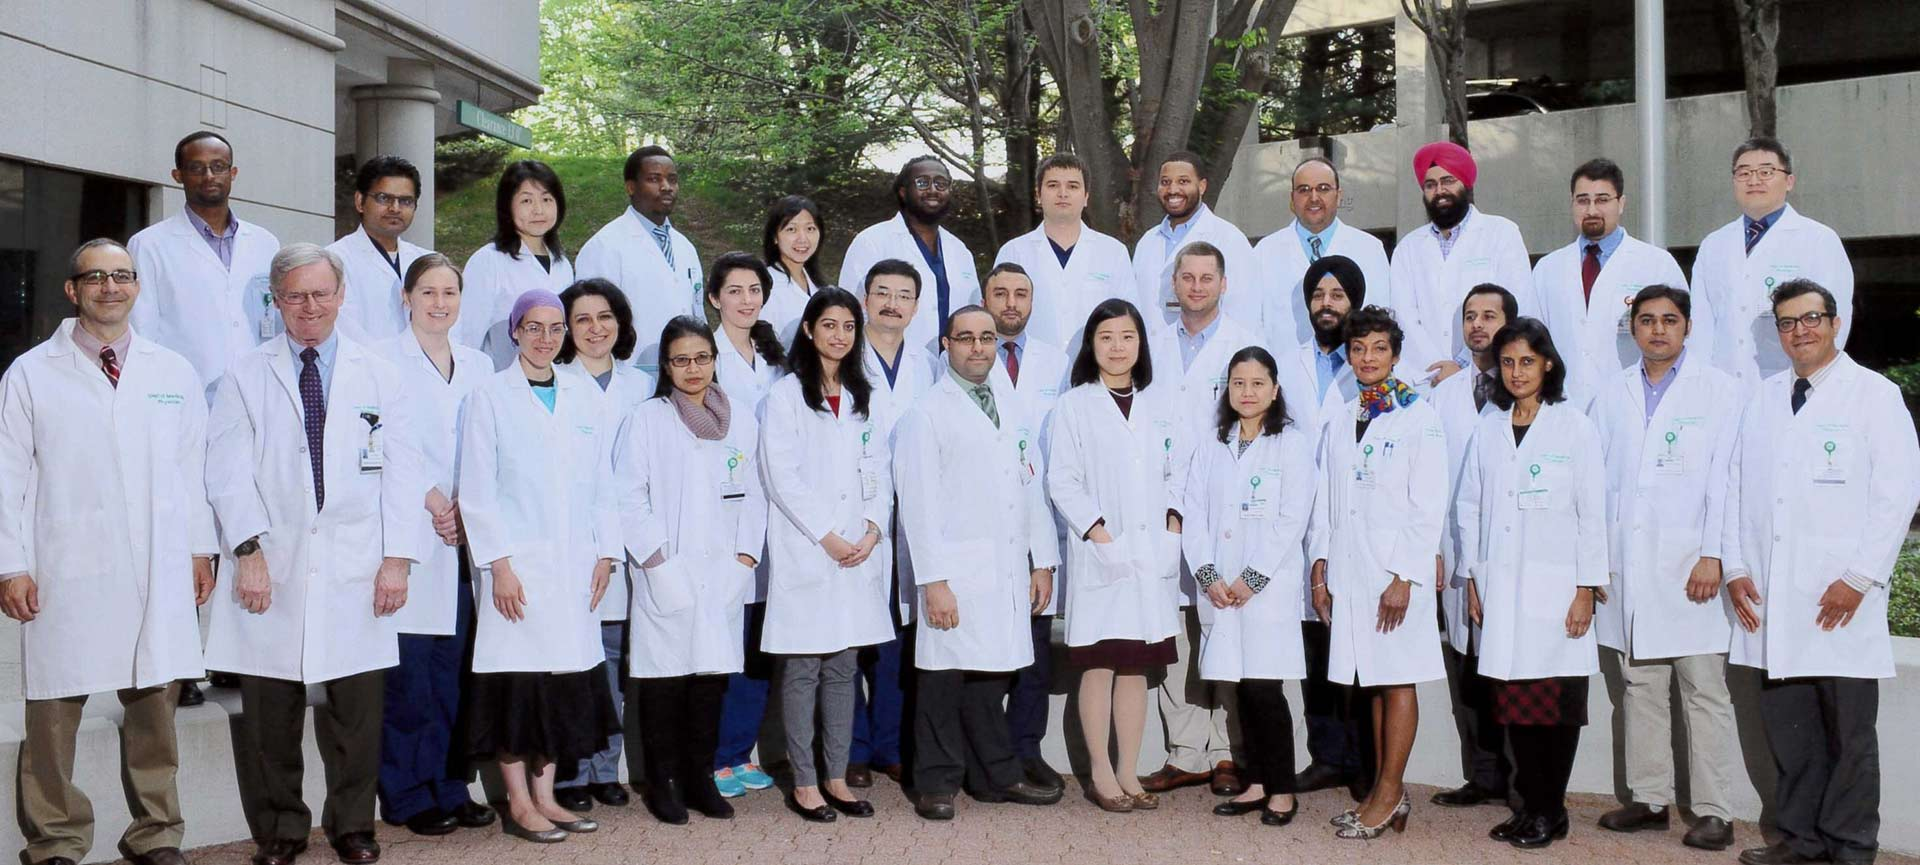 Our Graduates - Internal Medicine Residency Program in Baltimore, MD